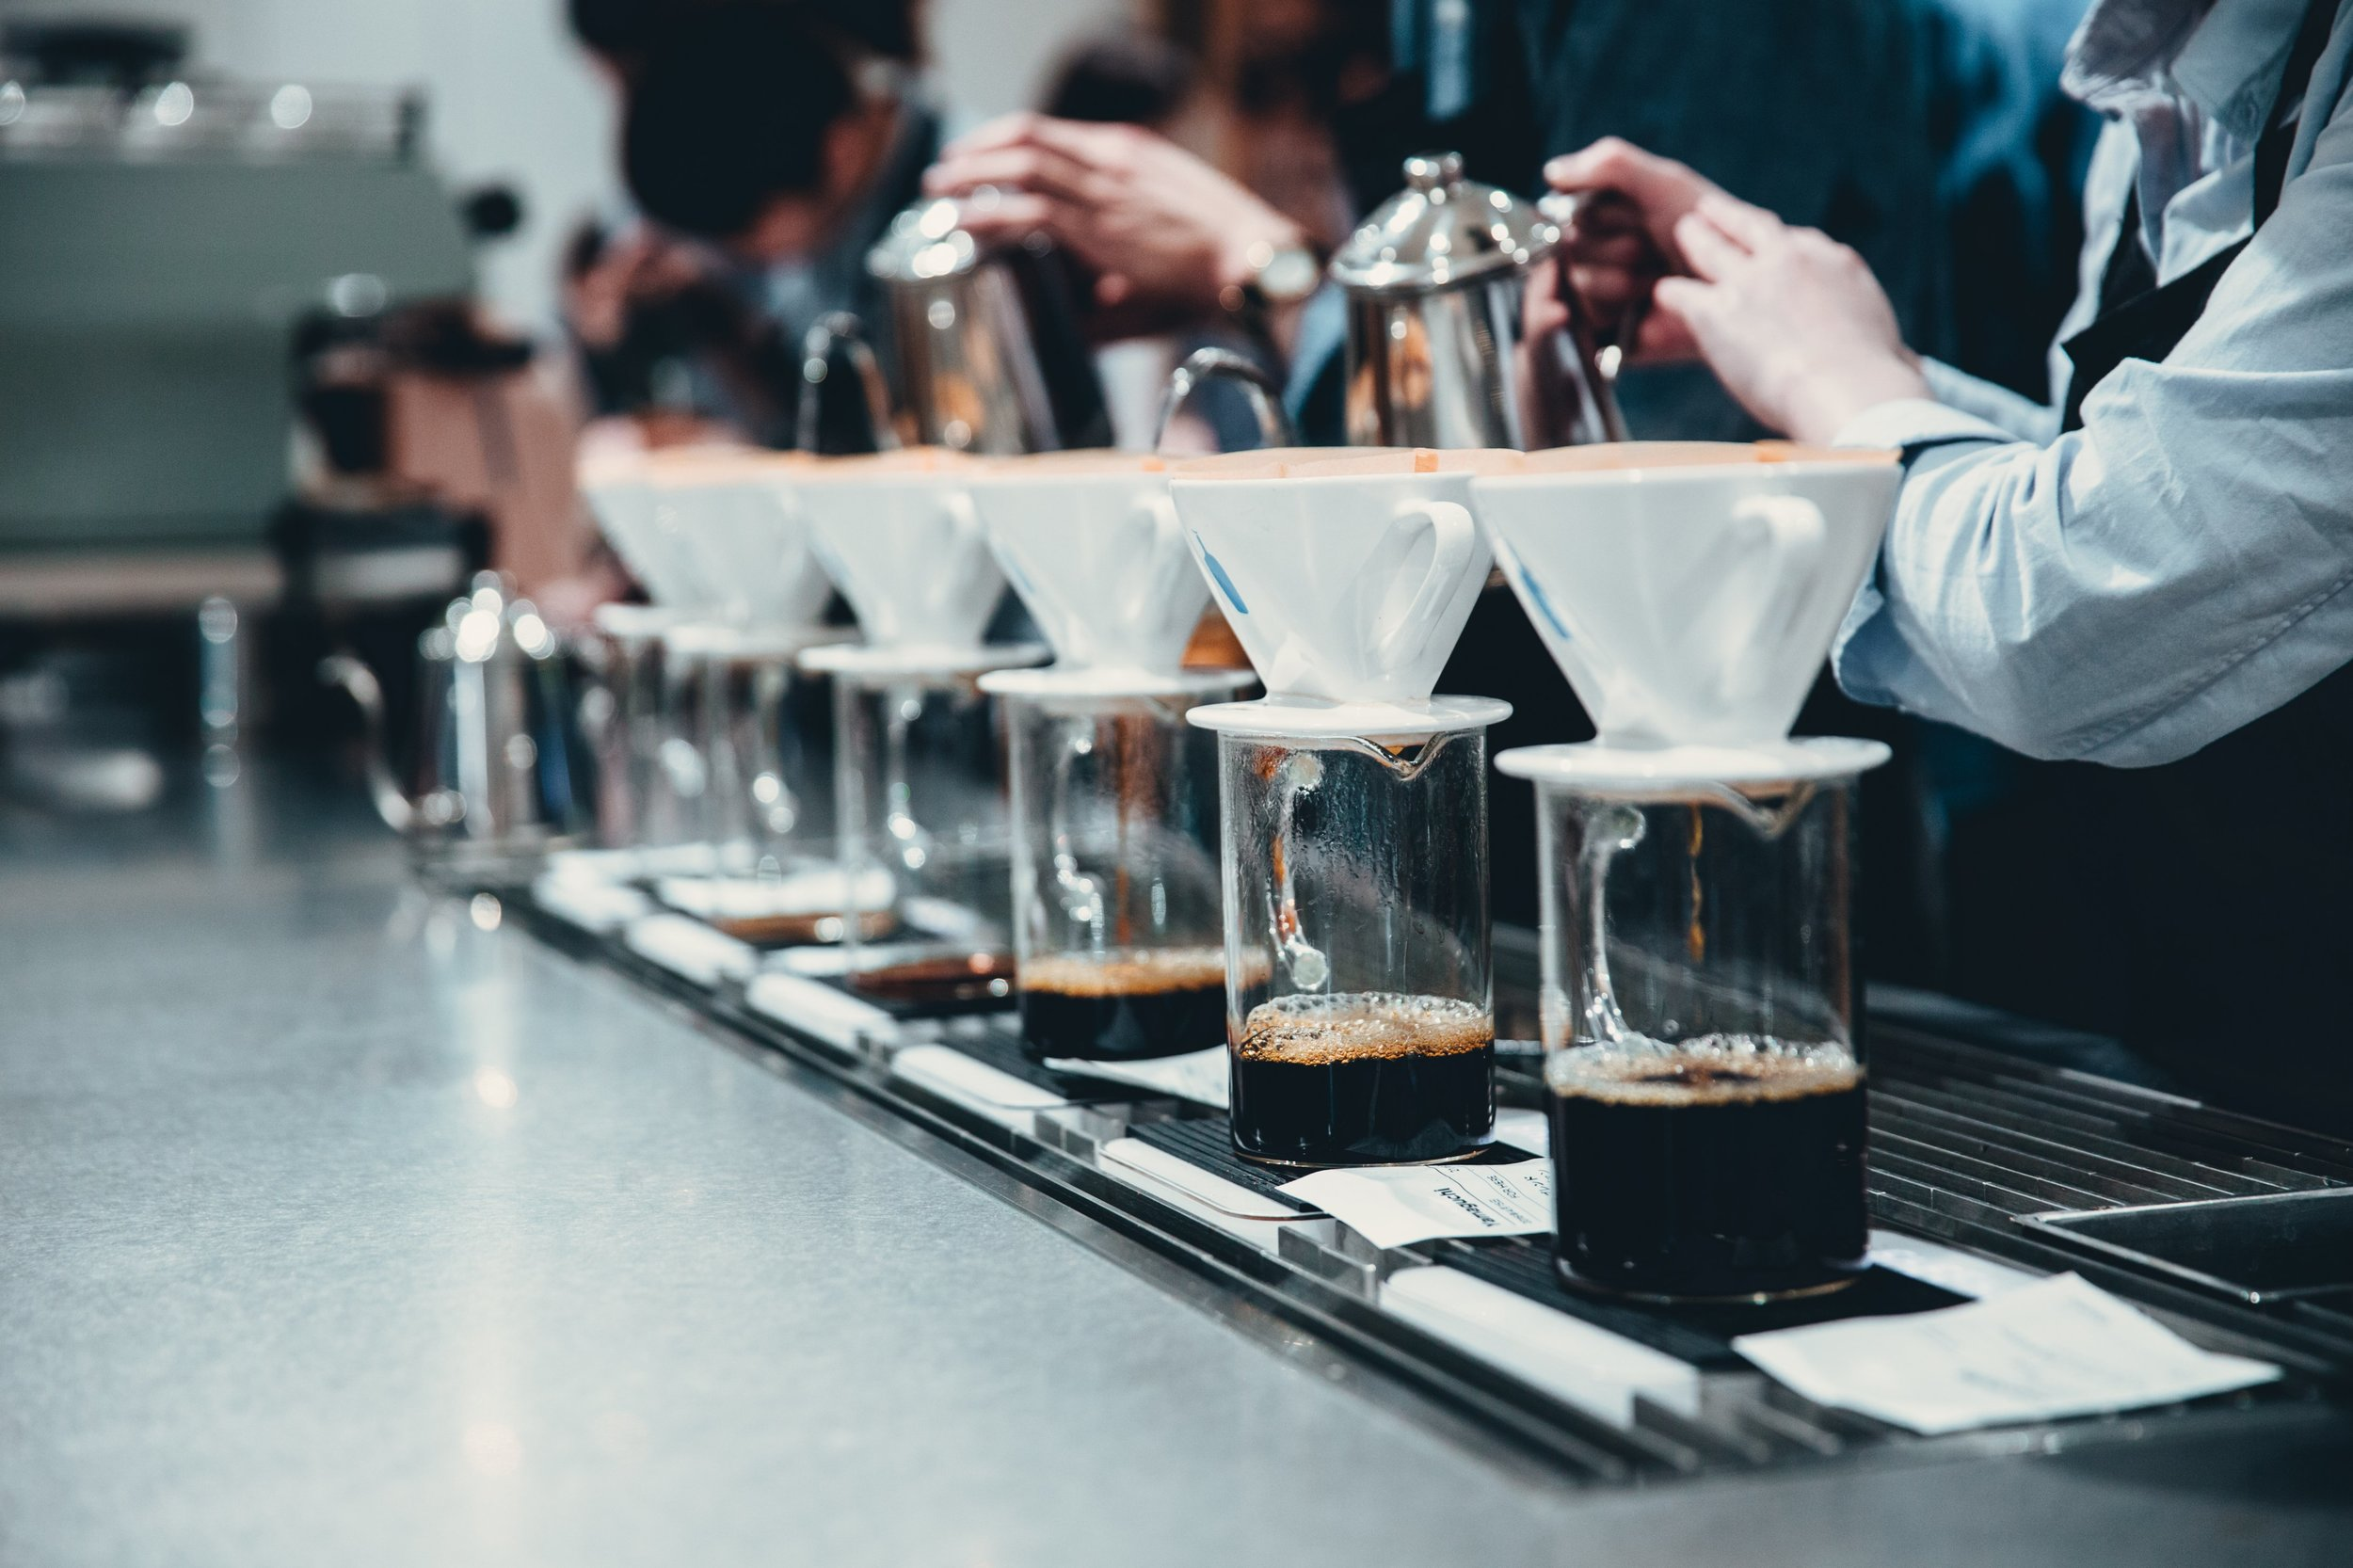 pour-over-coffee-competition_4460x4460.jpg